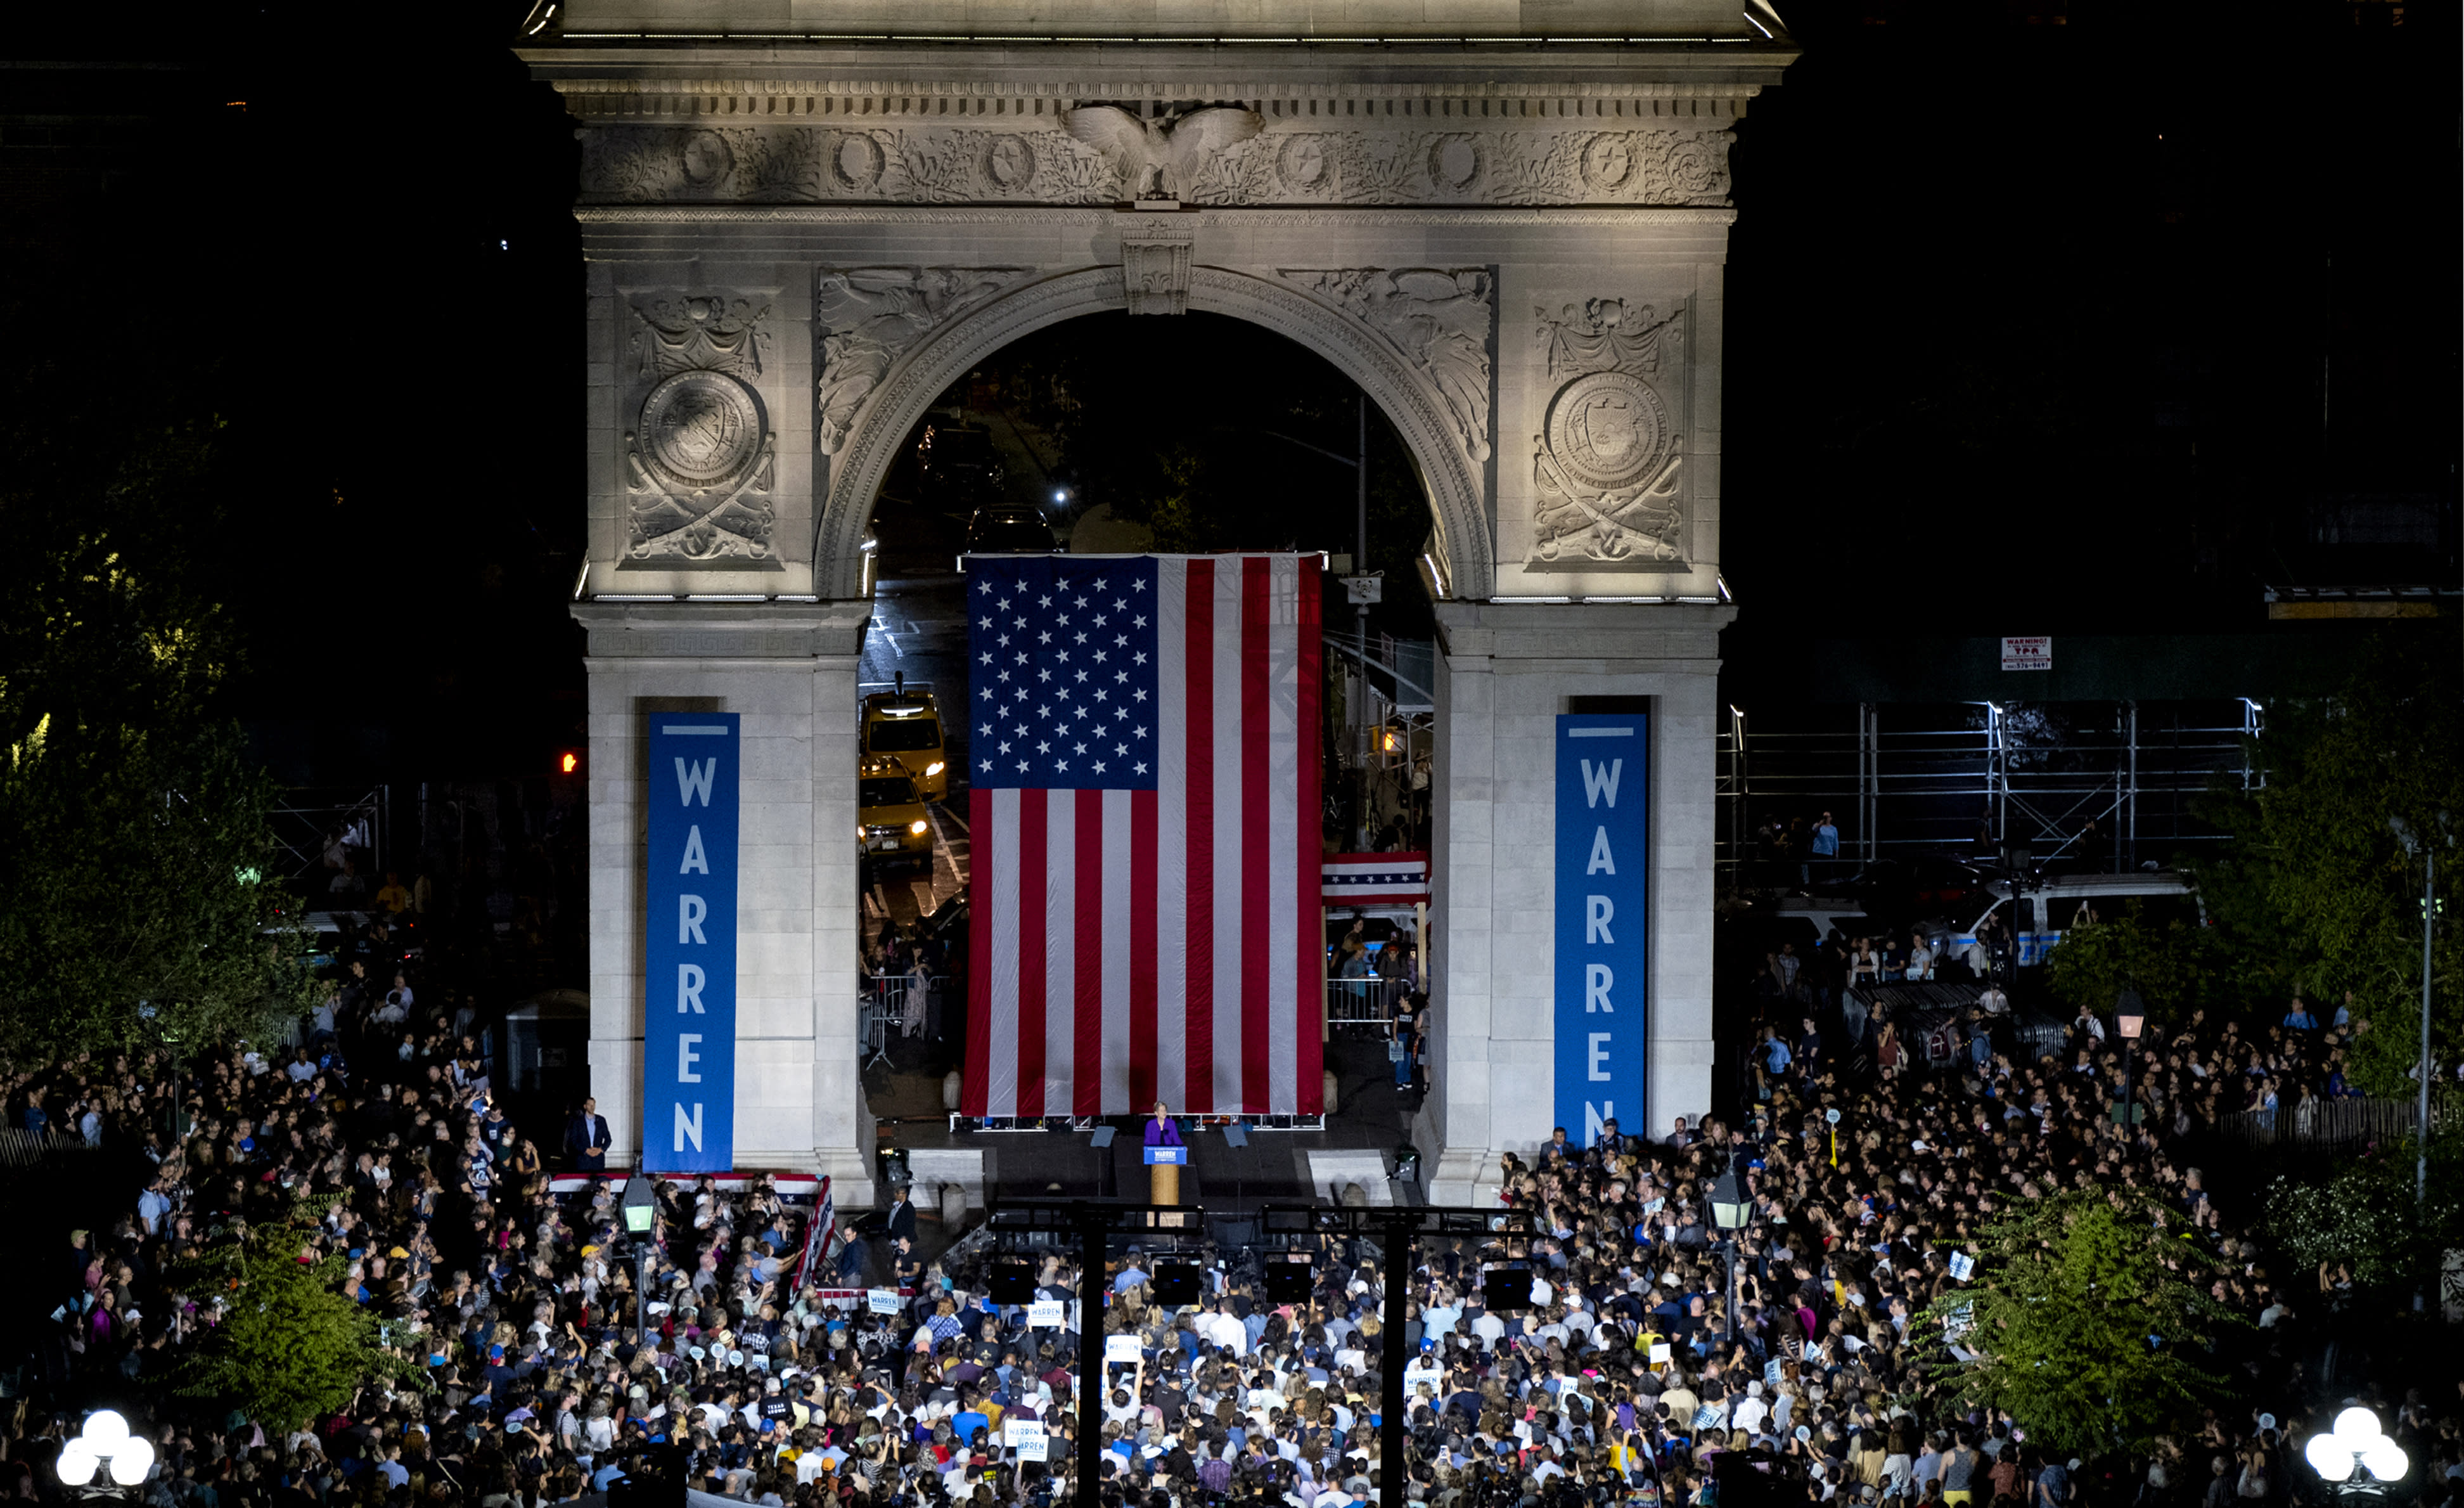 Democratic presidential candidate U.S. Sen. Elizabeth Warren addresses supporters at a rally at Washington Square Park, Monday, Sept. 16, 2019, in New York. (AP Photo/Craig Ruttle)